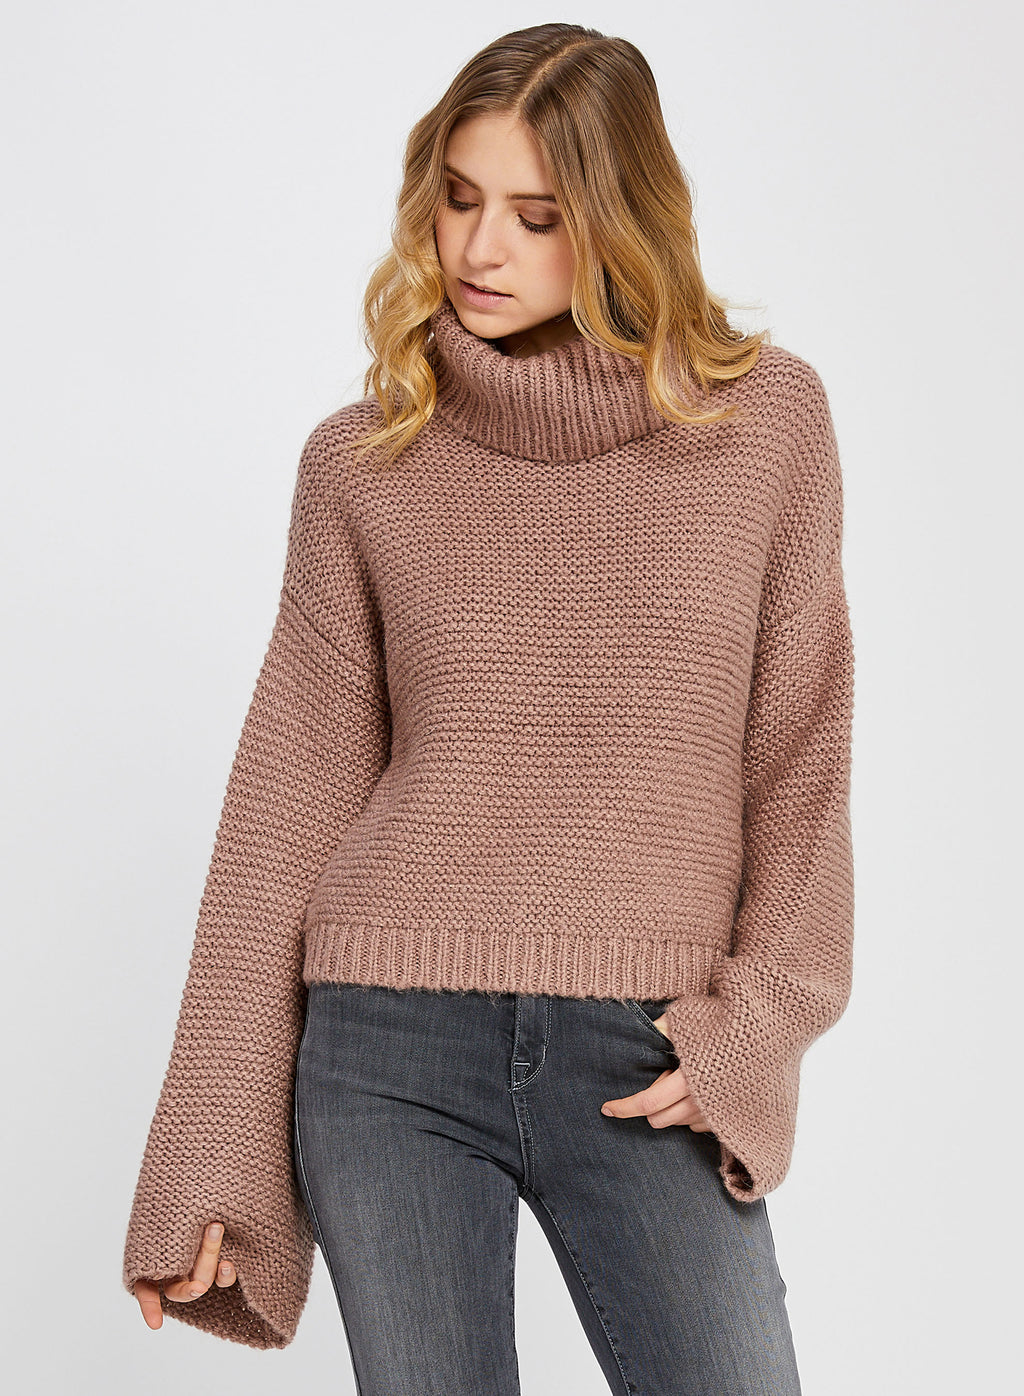 LORNE H.FAWN SWEATER